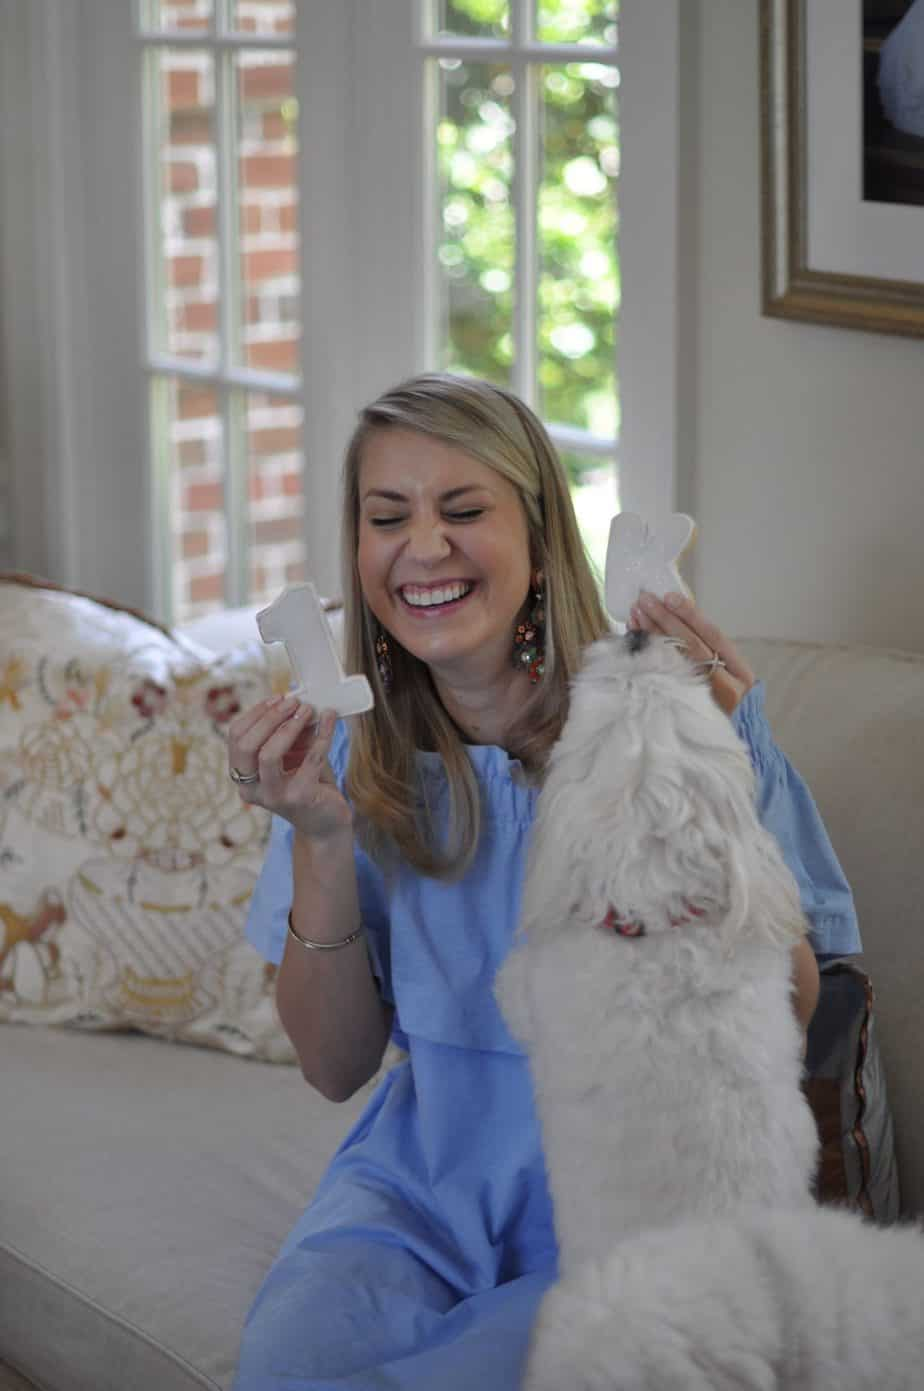 1K Insta Followers!